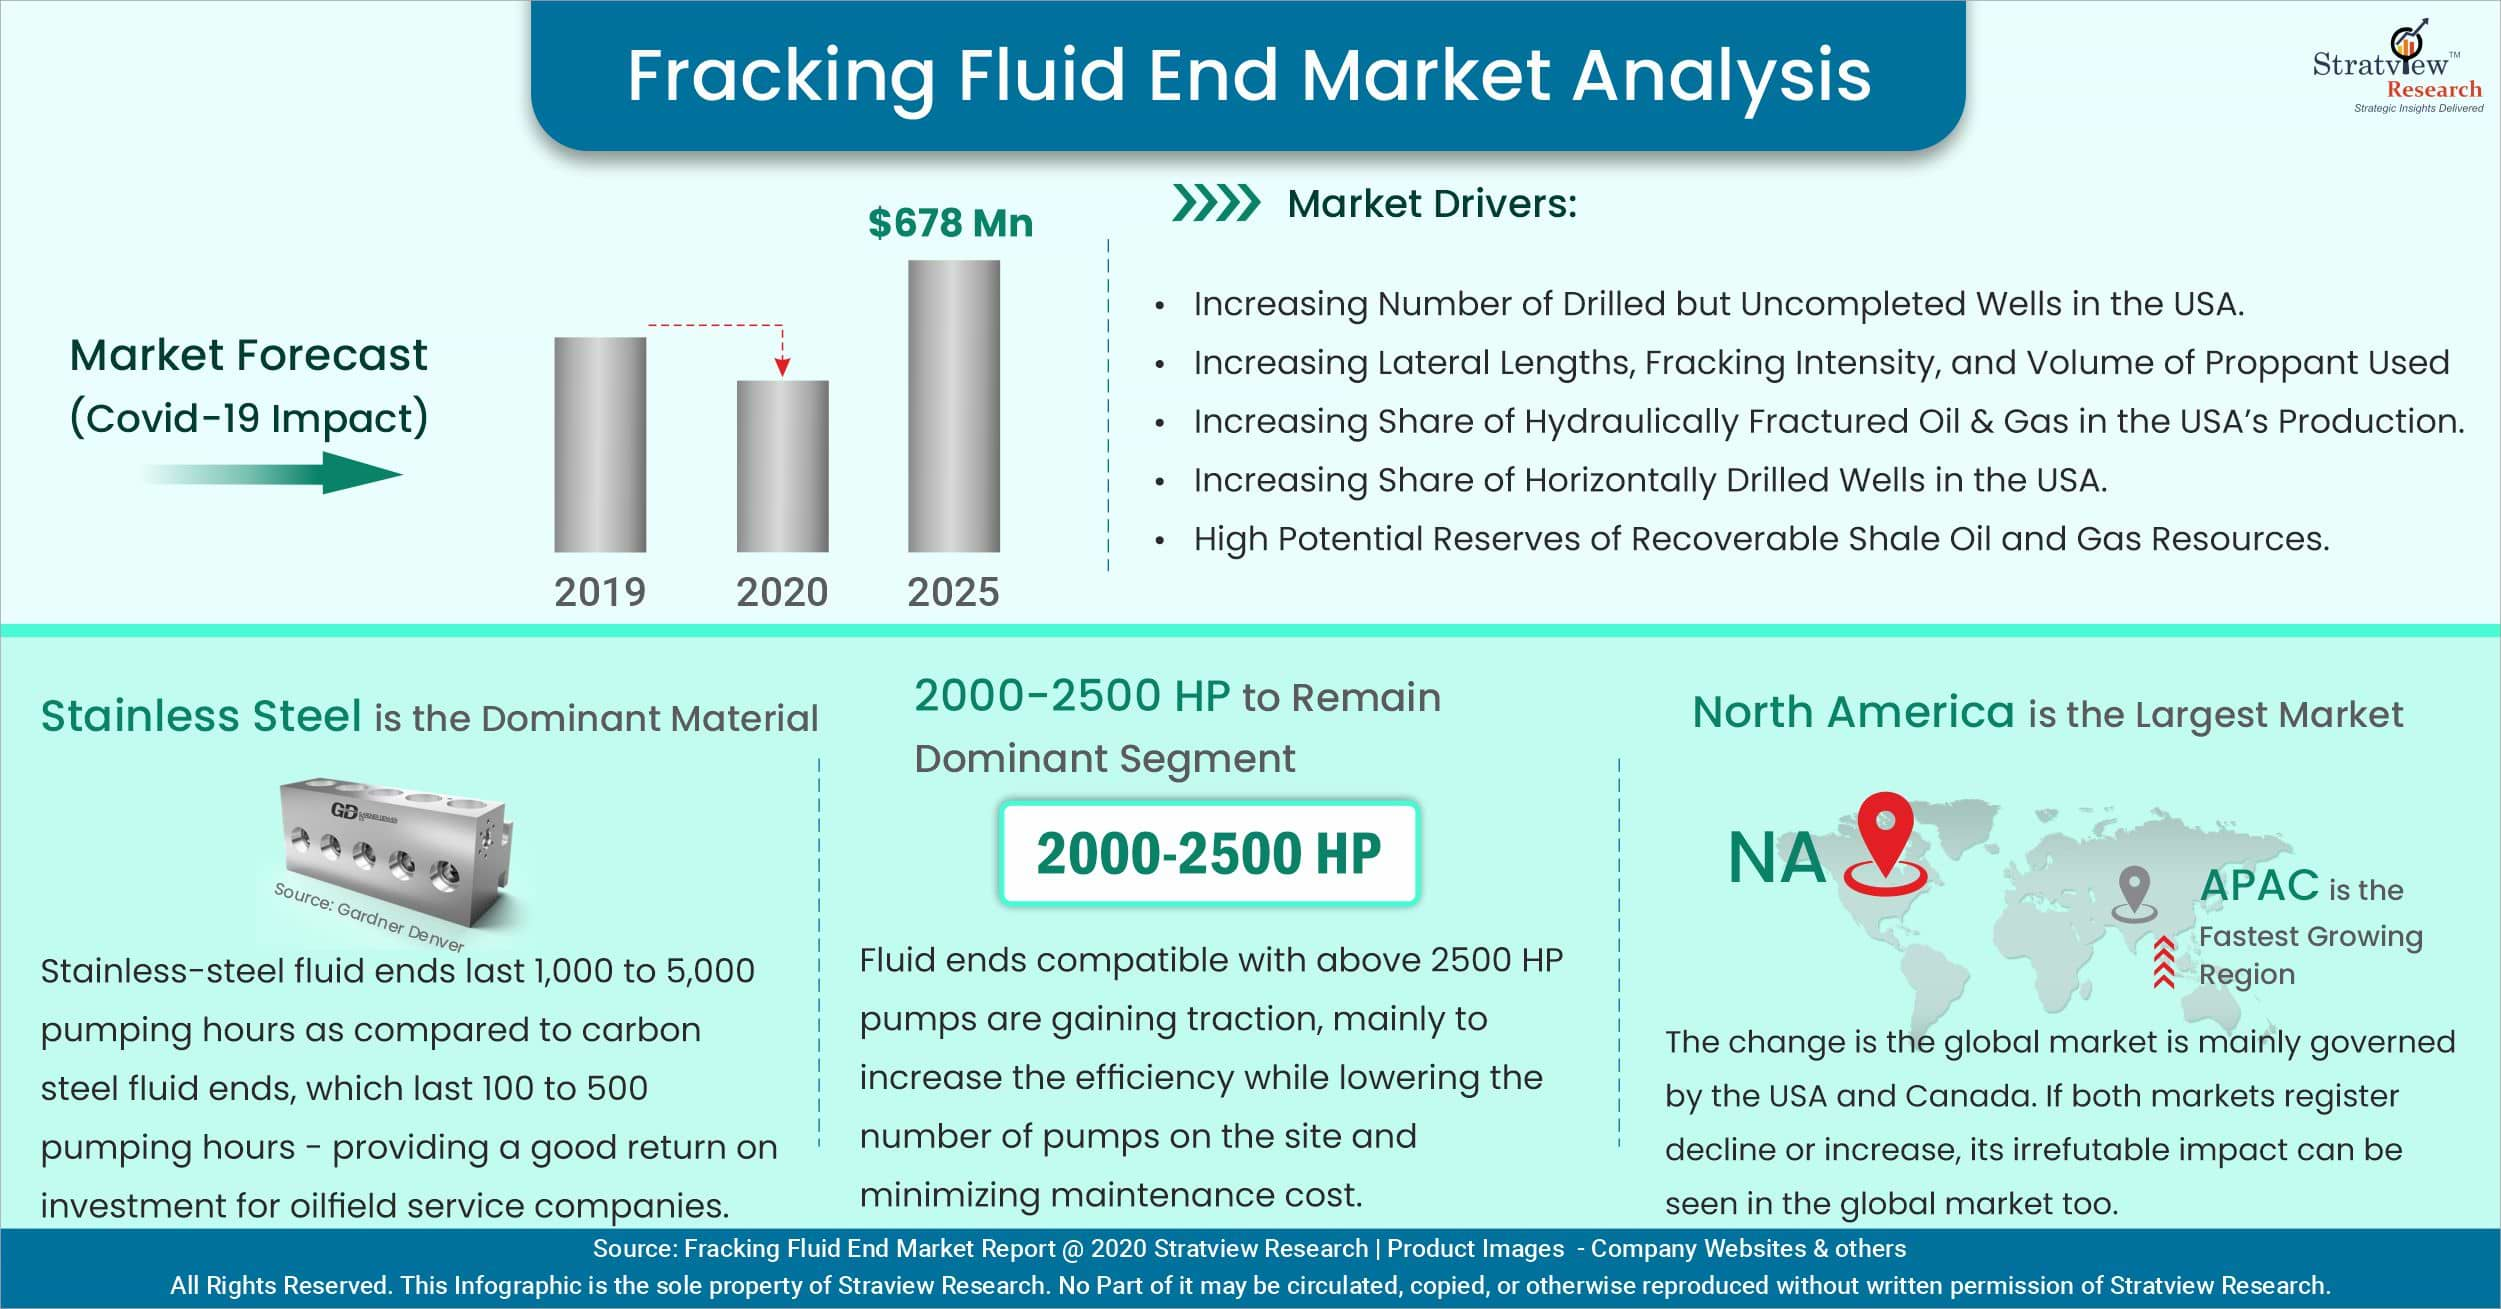 Fracking Fluid End Market Analysis